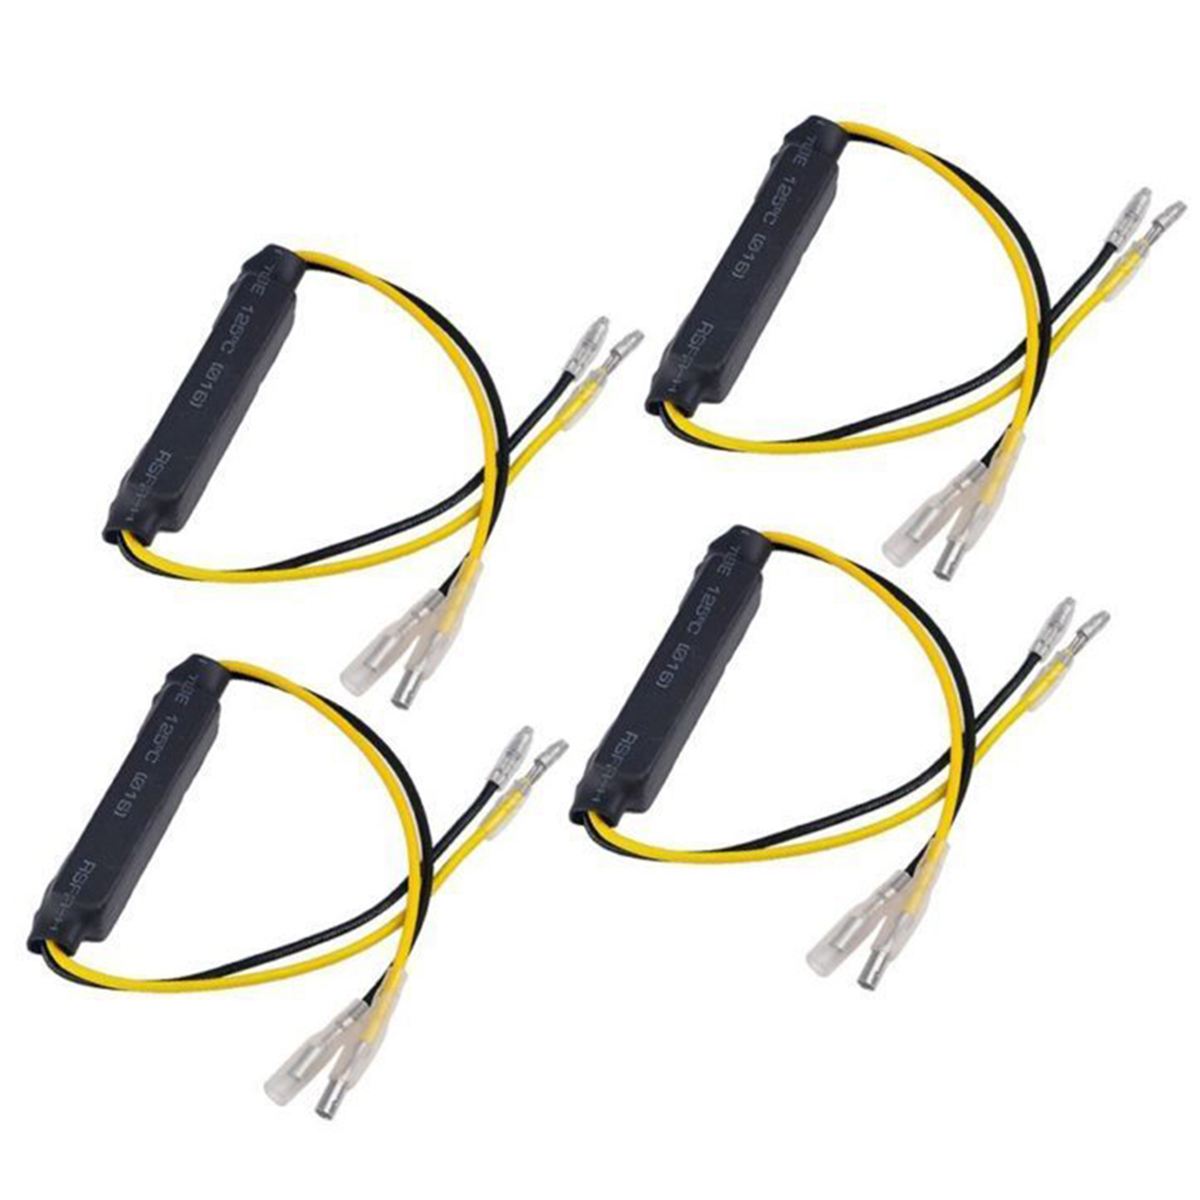 4pcs DC 12.8V 21W Universal Motorcycle Turn Signal Indicator Light LED Load Resistor Decoder Fix Blinker Flash Error Accessories